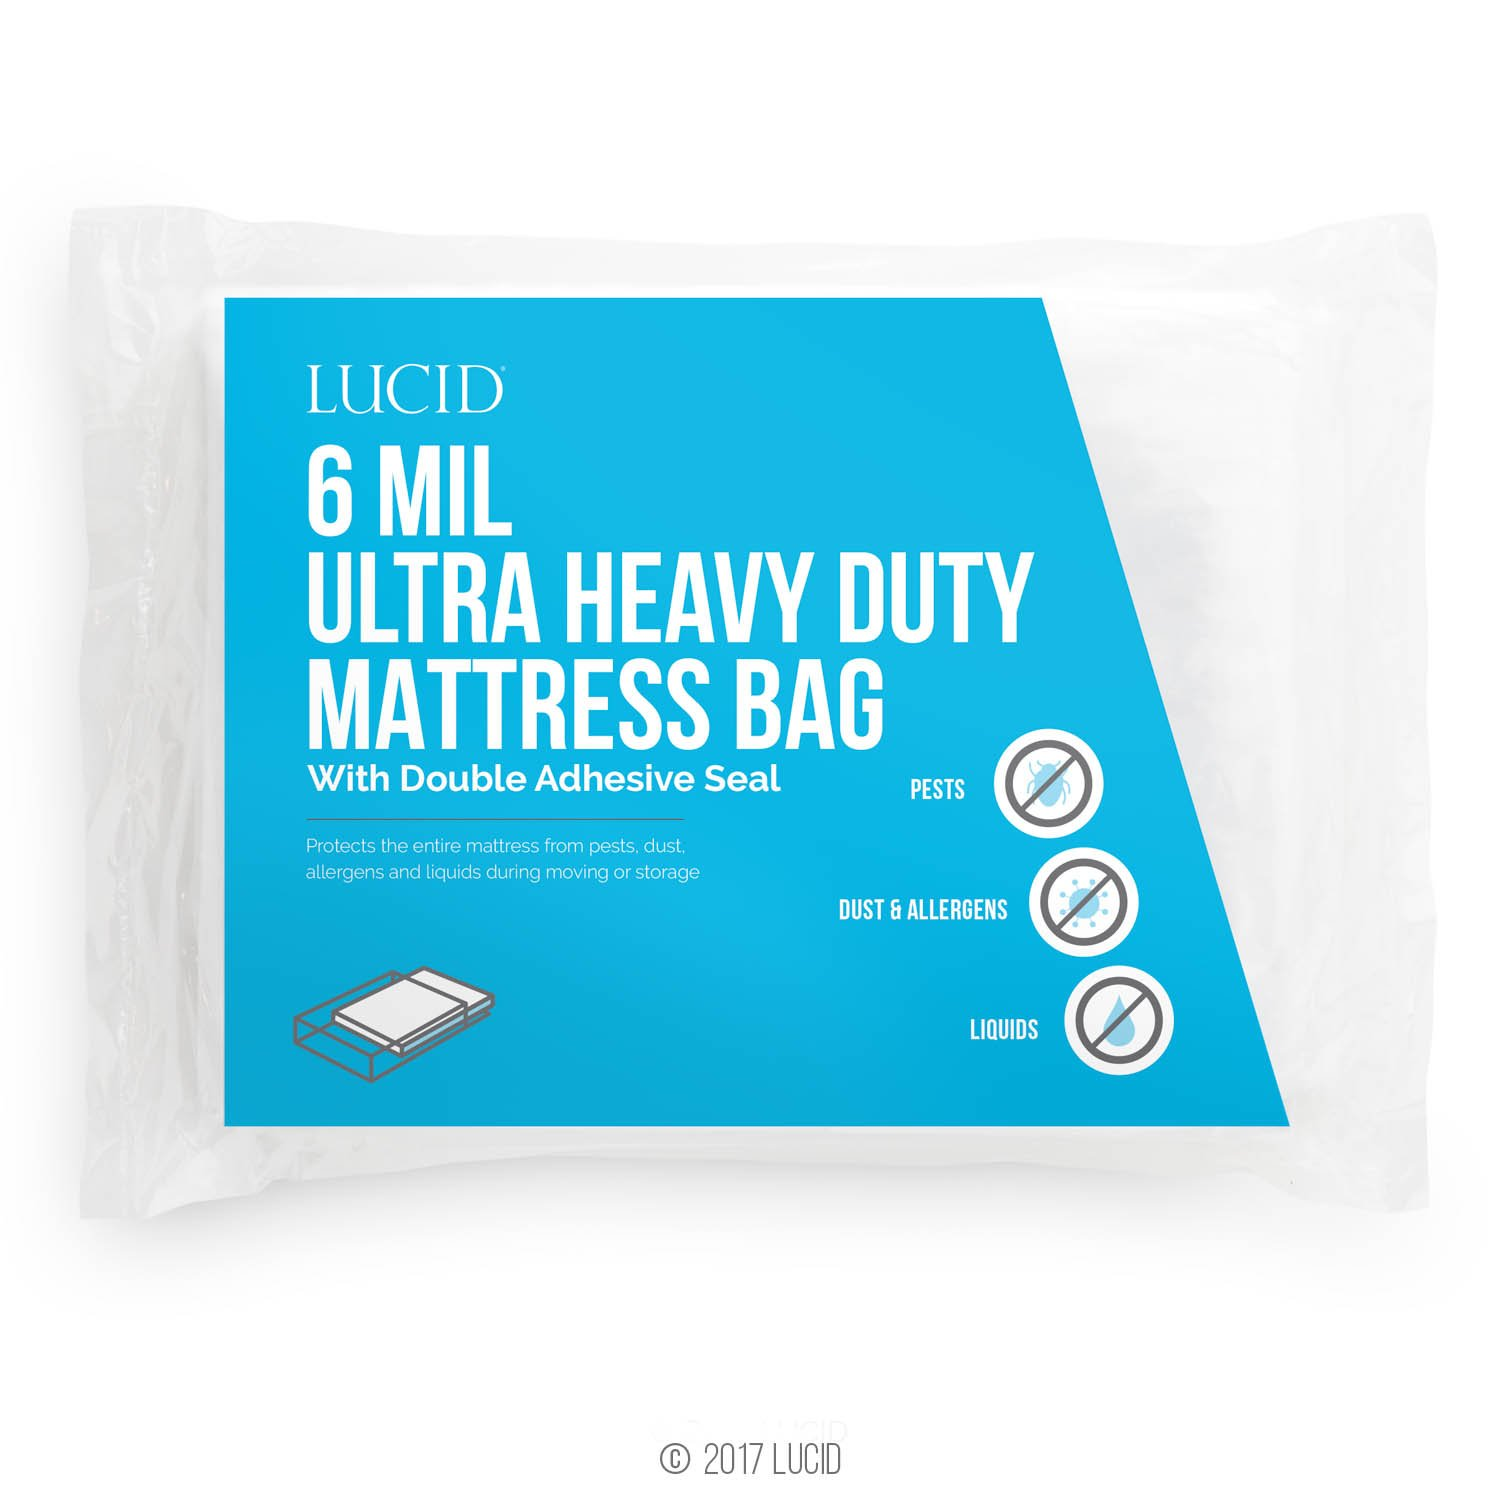 Lucid 6 Mil Ultra Heavy Duty Mattress Bag For Moving Storage Or Disposal Seals